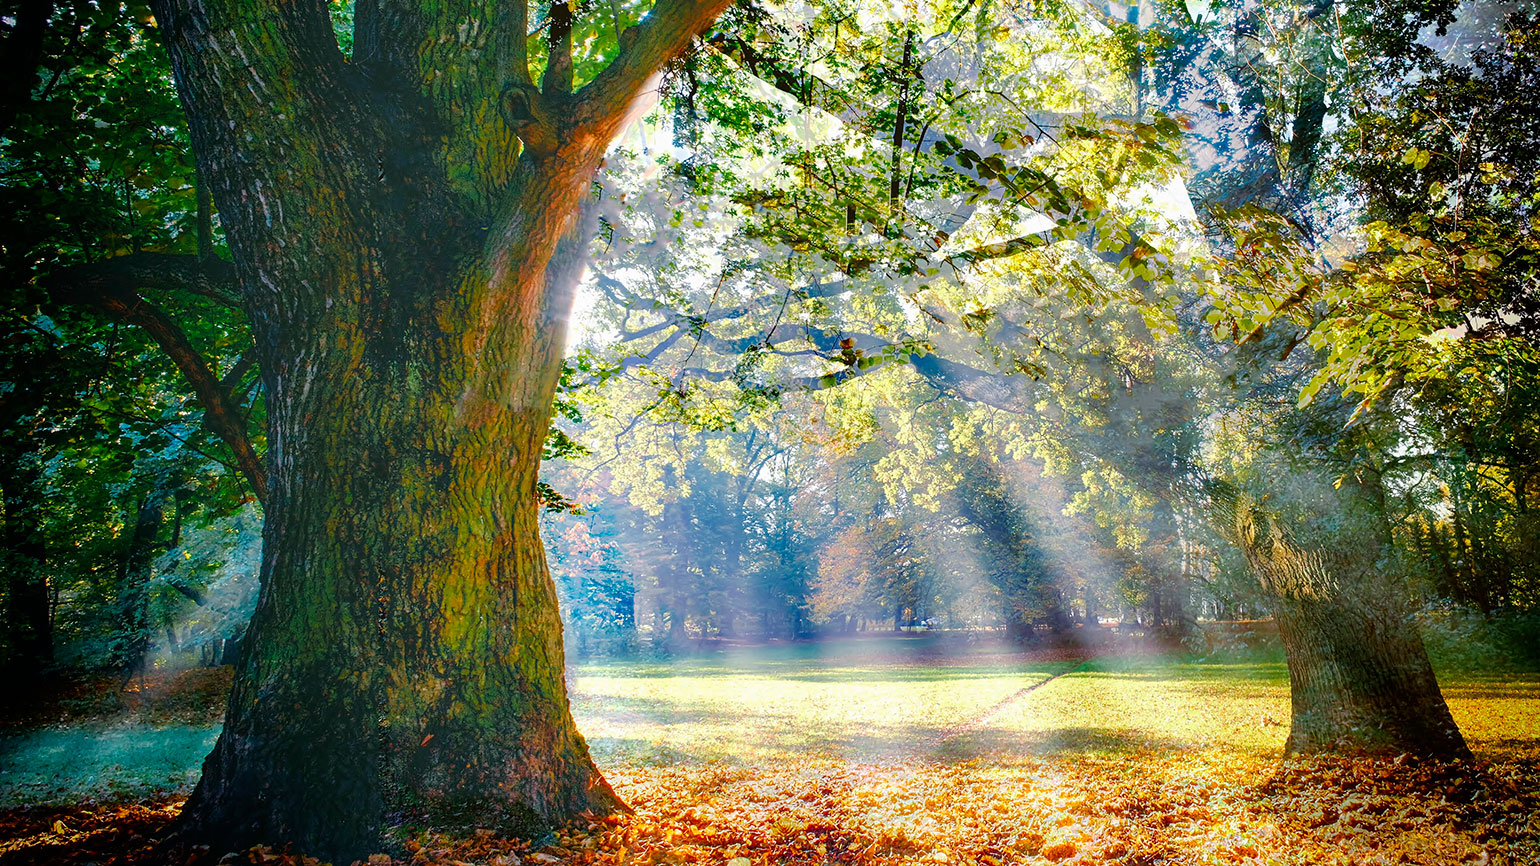 Sunbeams stream into a forest